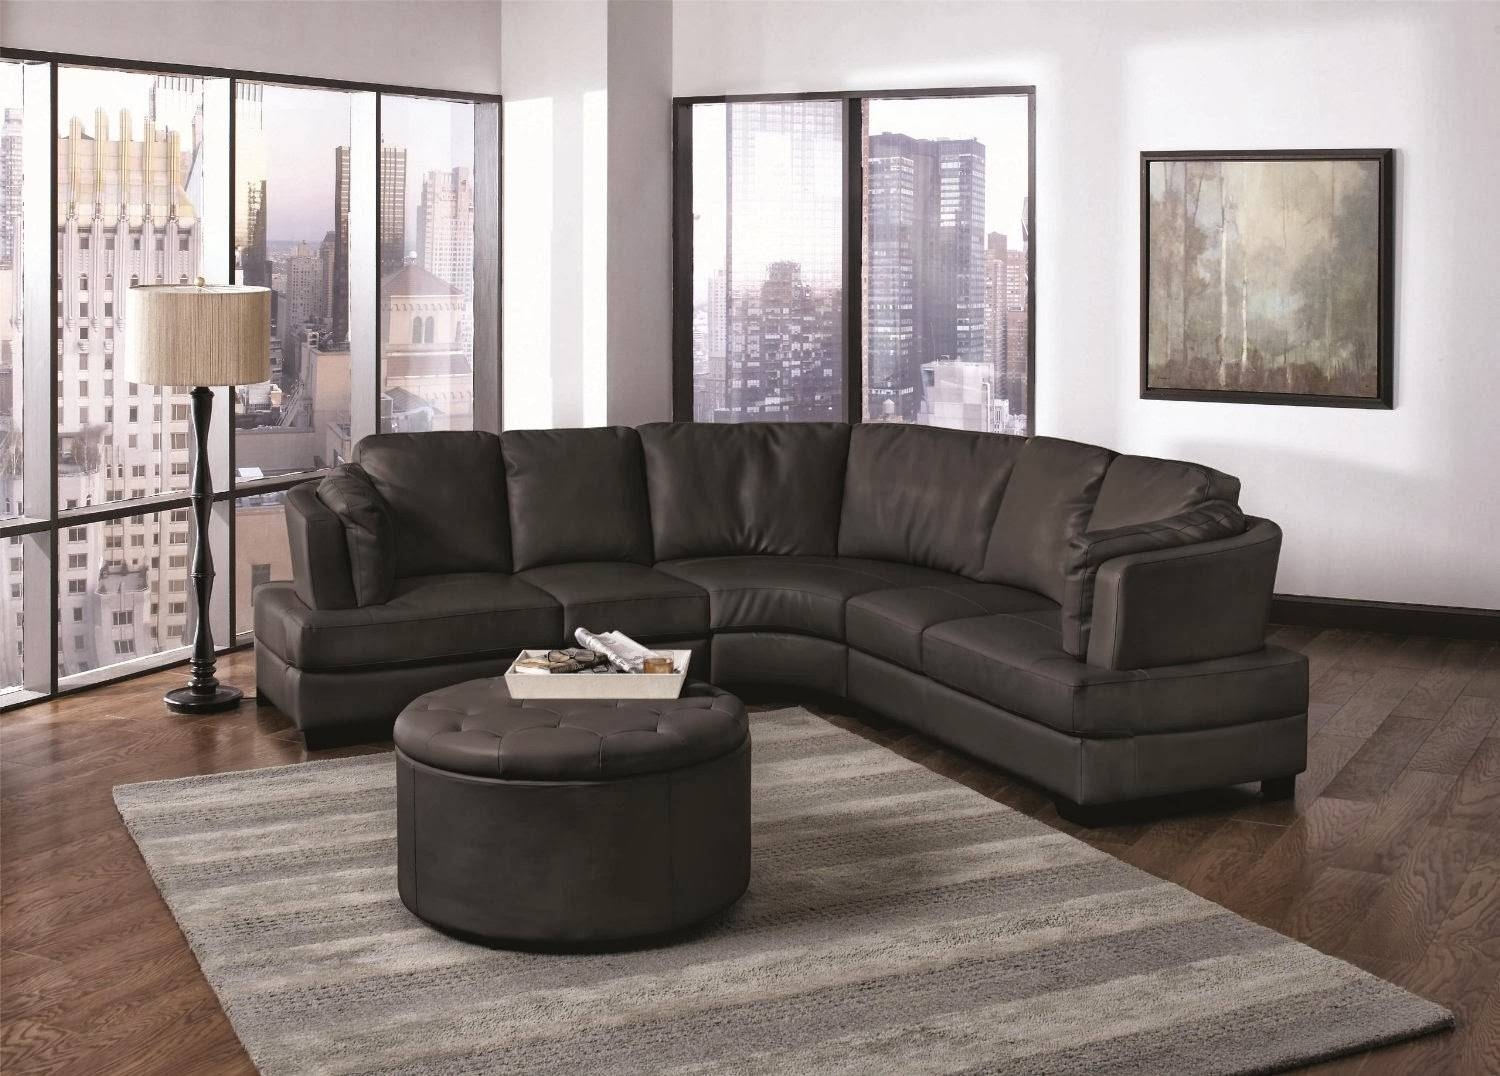 High Quality Trend Sectional Sofas Bay Area 77 In Petite Sectional Sofa With With Regard  To Petite Sectional